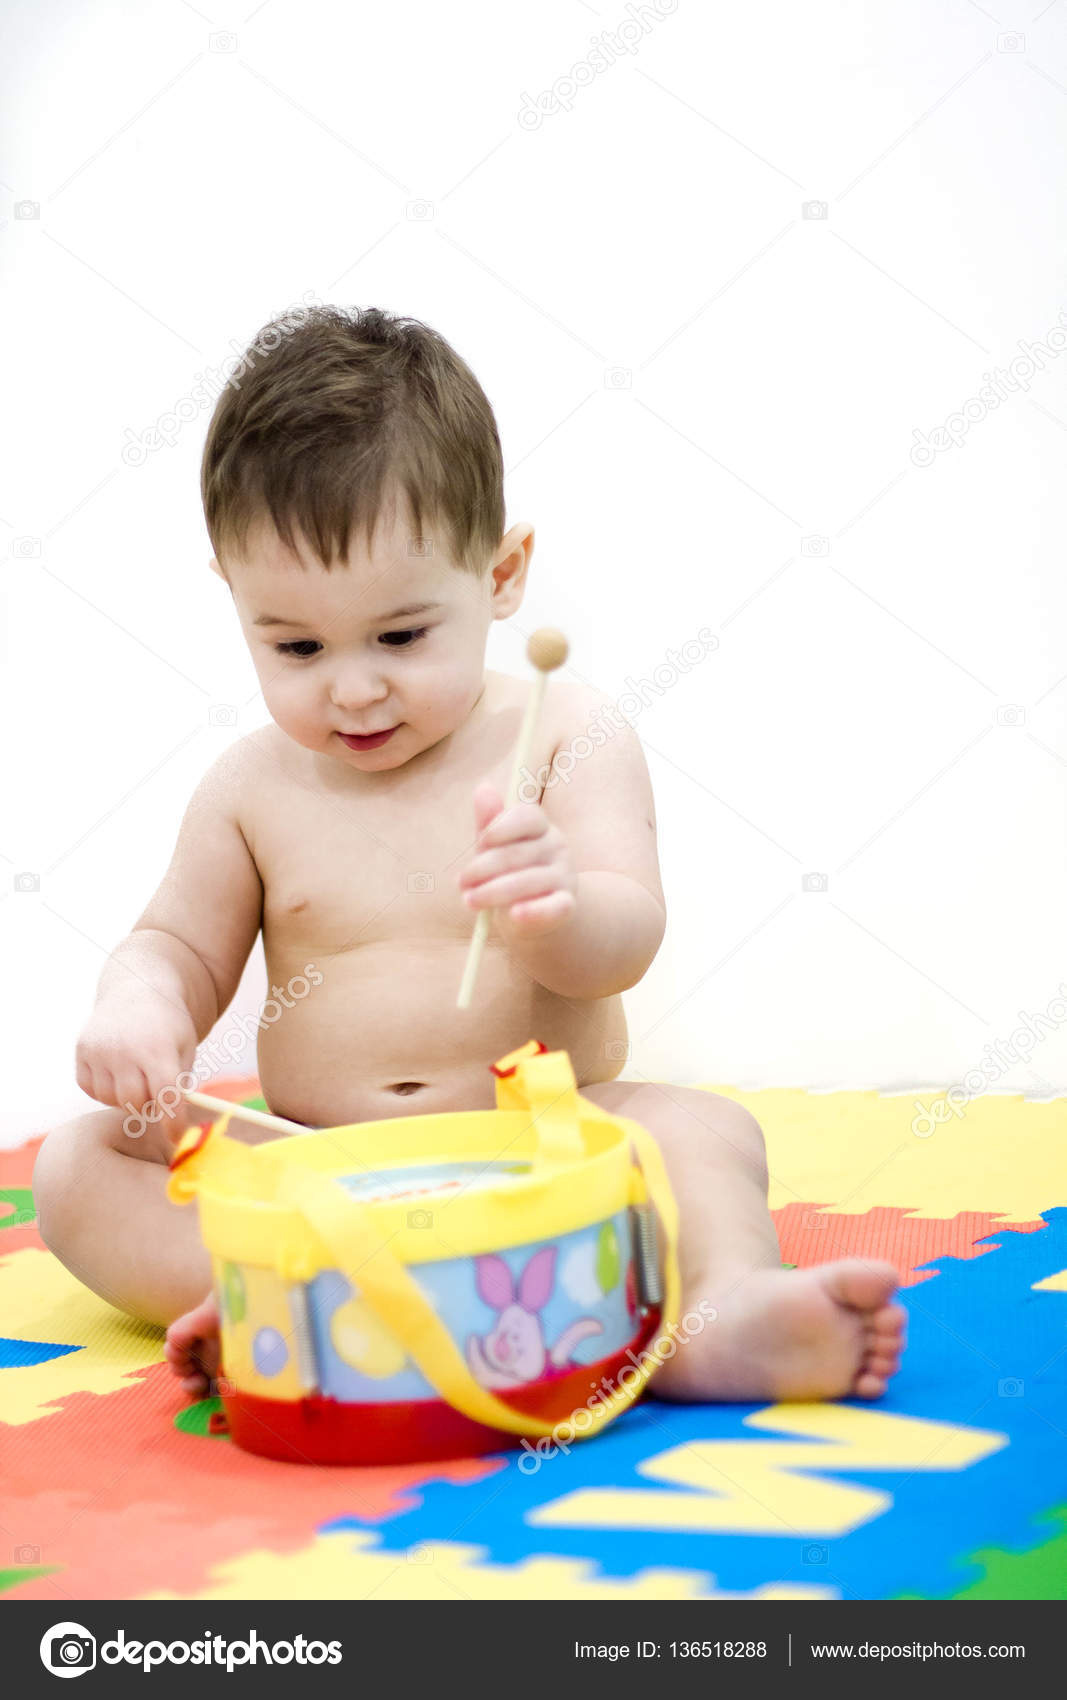 Baby Kid Musical Toy The Boy Learns Play The Drum P O By Konevaelvira Gmail Com